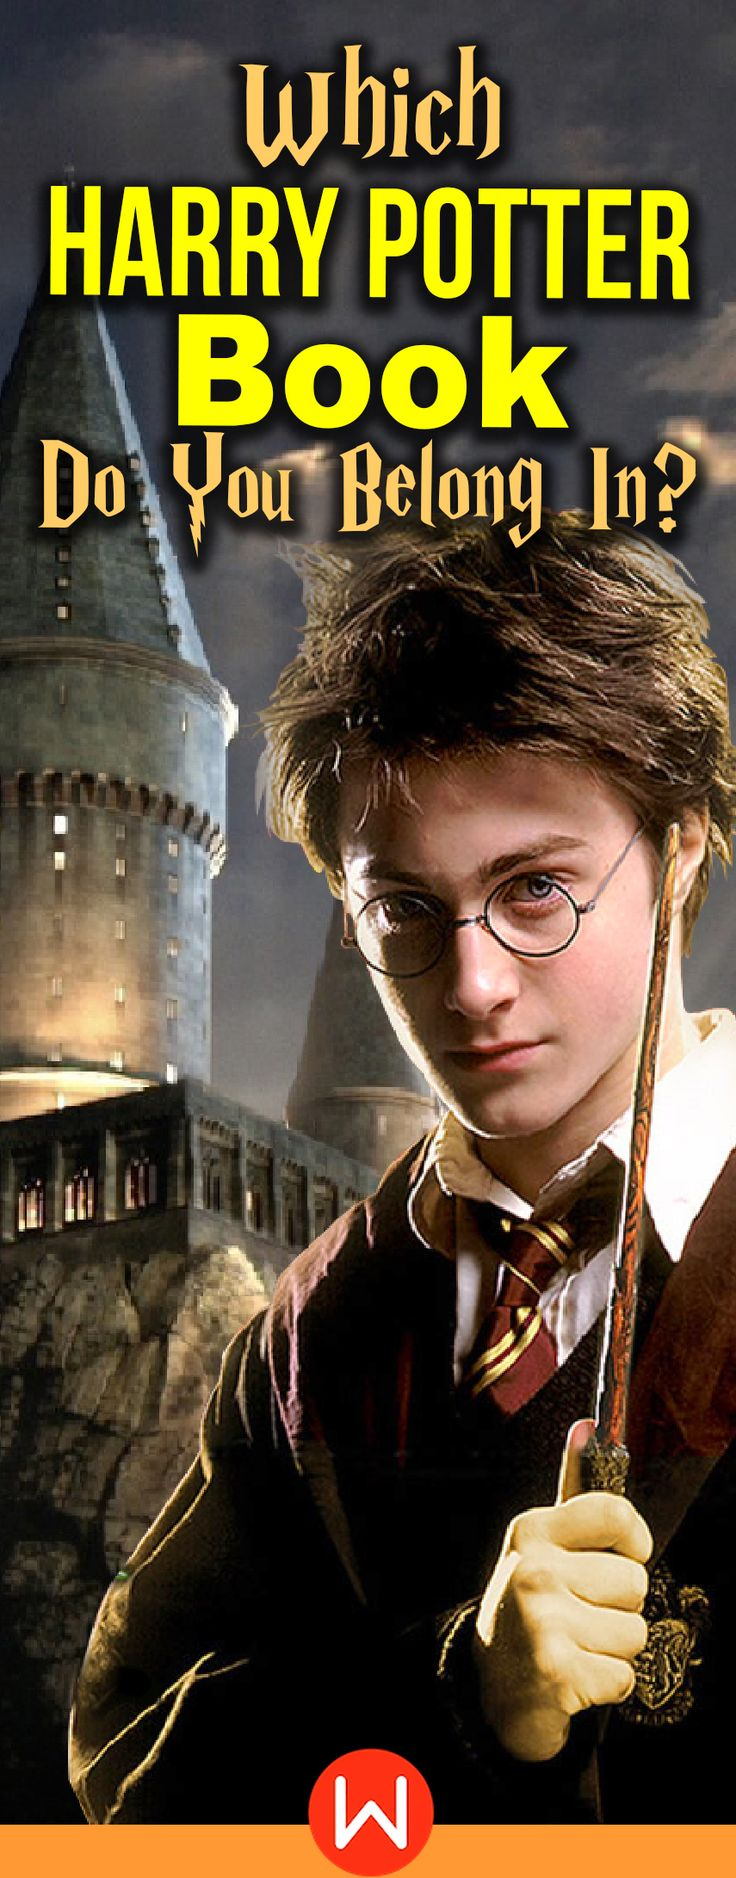 Quiz Which Harry Potter Book Do You Belong In? in 2020